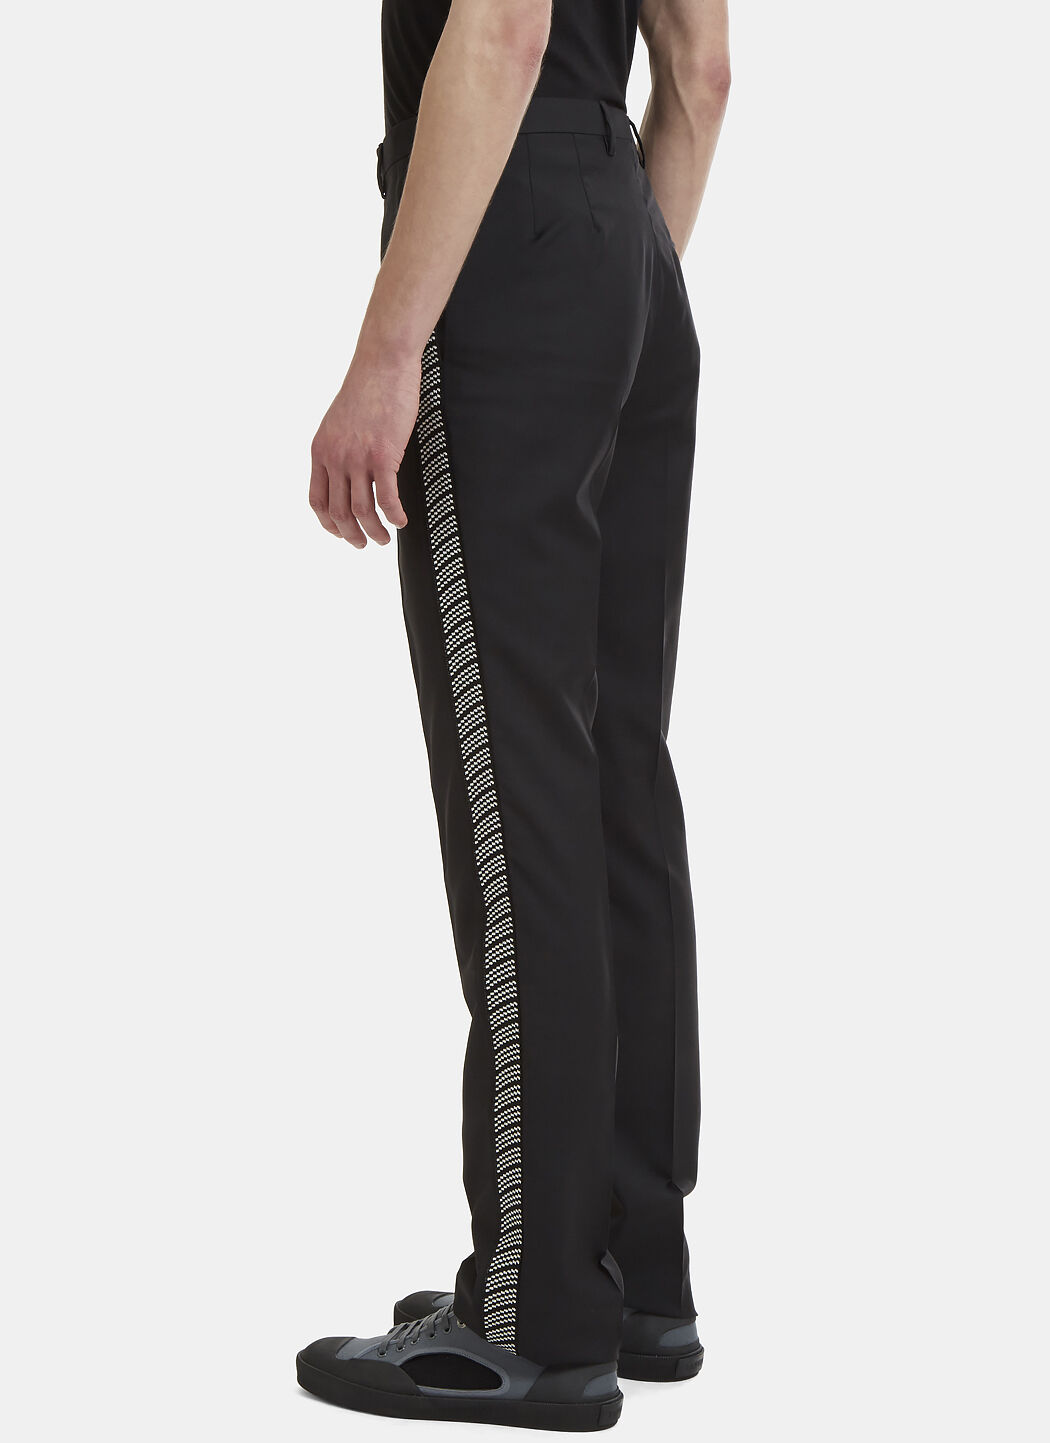 Jacquard Side Pleat Tailored Pants Lanvin Quality Free Shipping For Sale Sale Big Sale Quality From China Wholesale Sale 100% Authentic Looking For Online g4CZPq